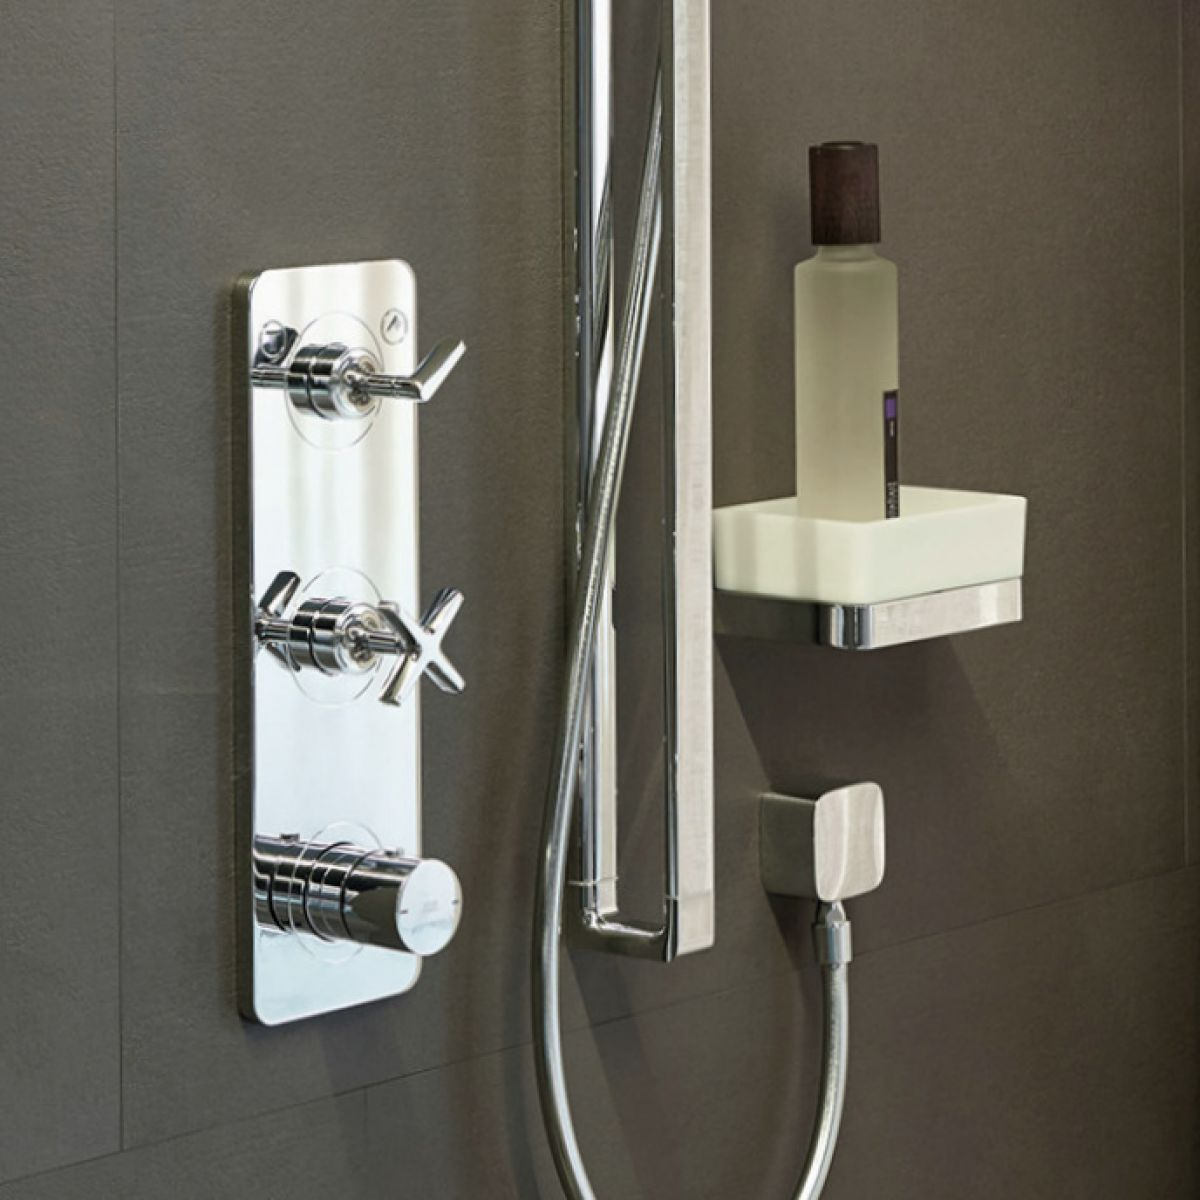 axor citterio e thermostatic shower finish set with 2 outlets uk bathrooms. Black Bedroom Furniture Sets. Home Design Ideas